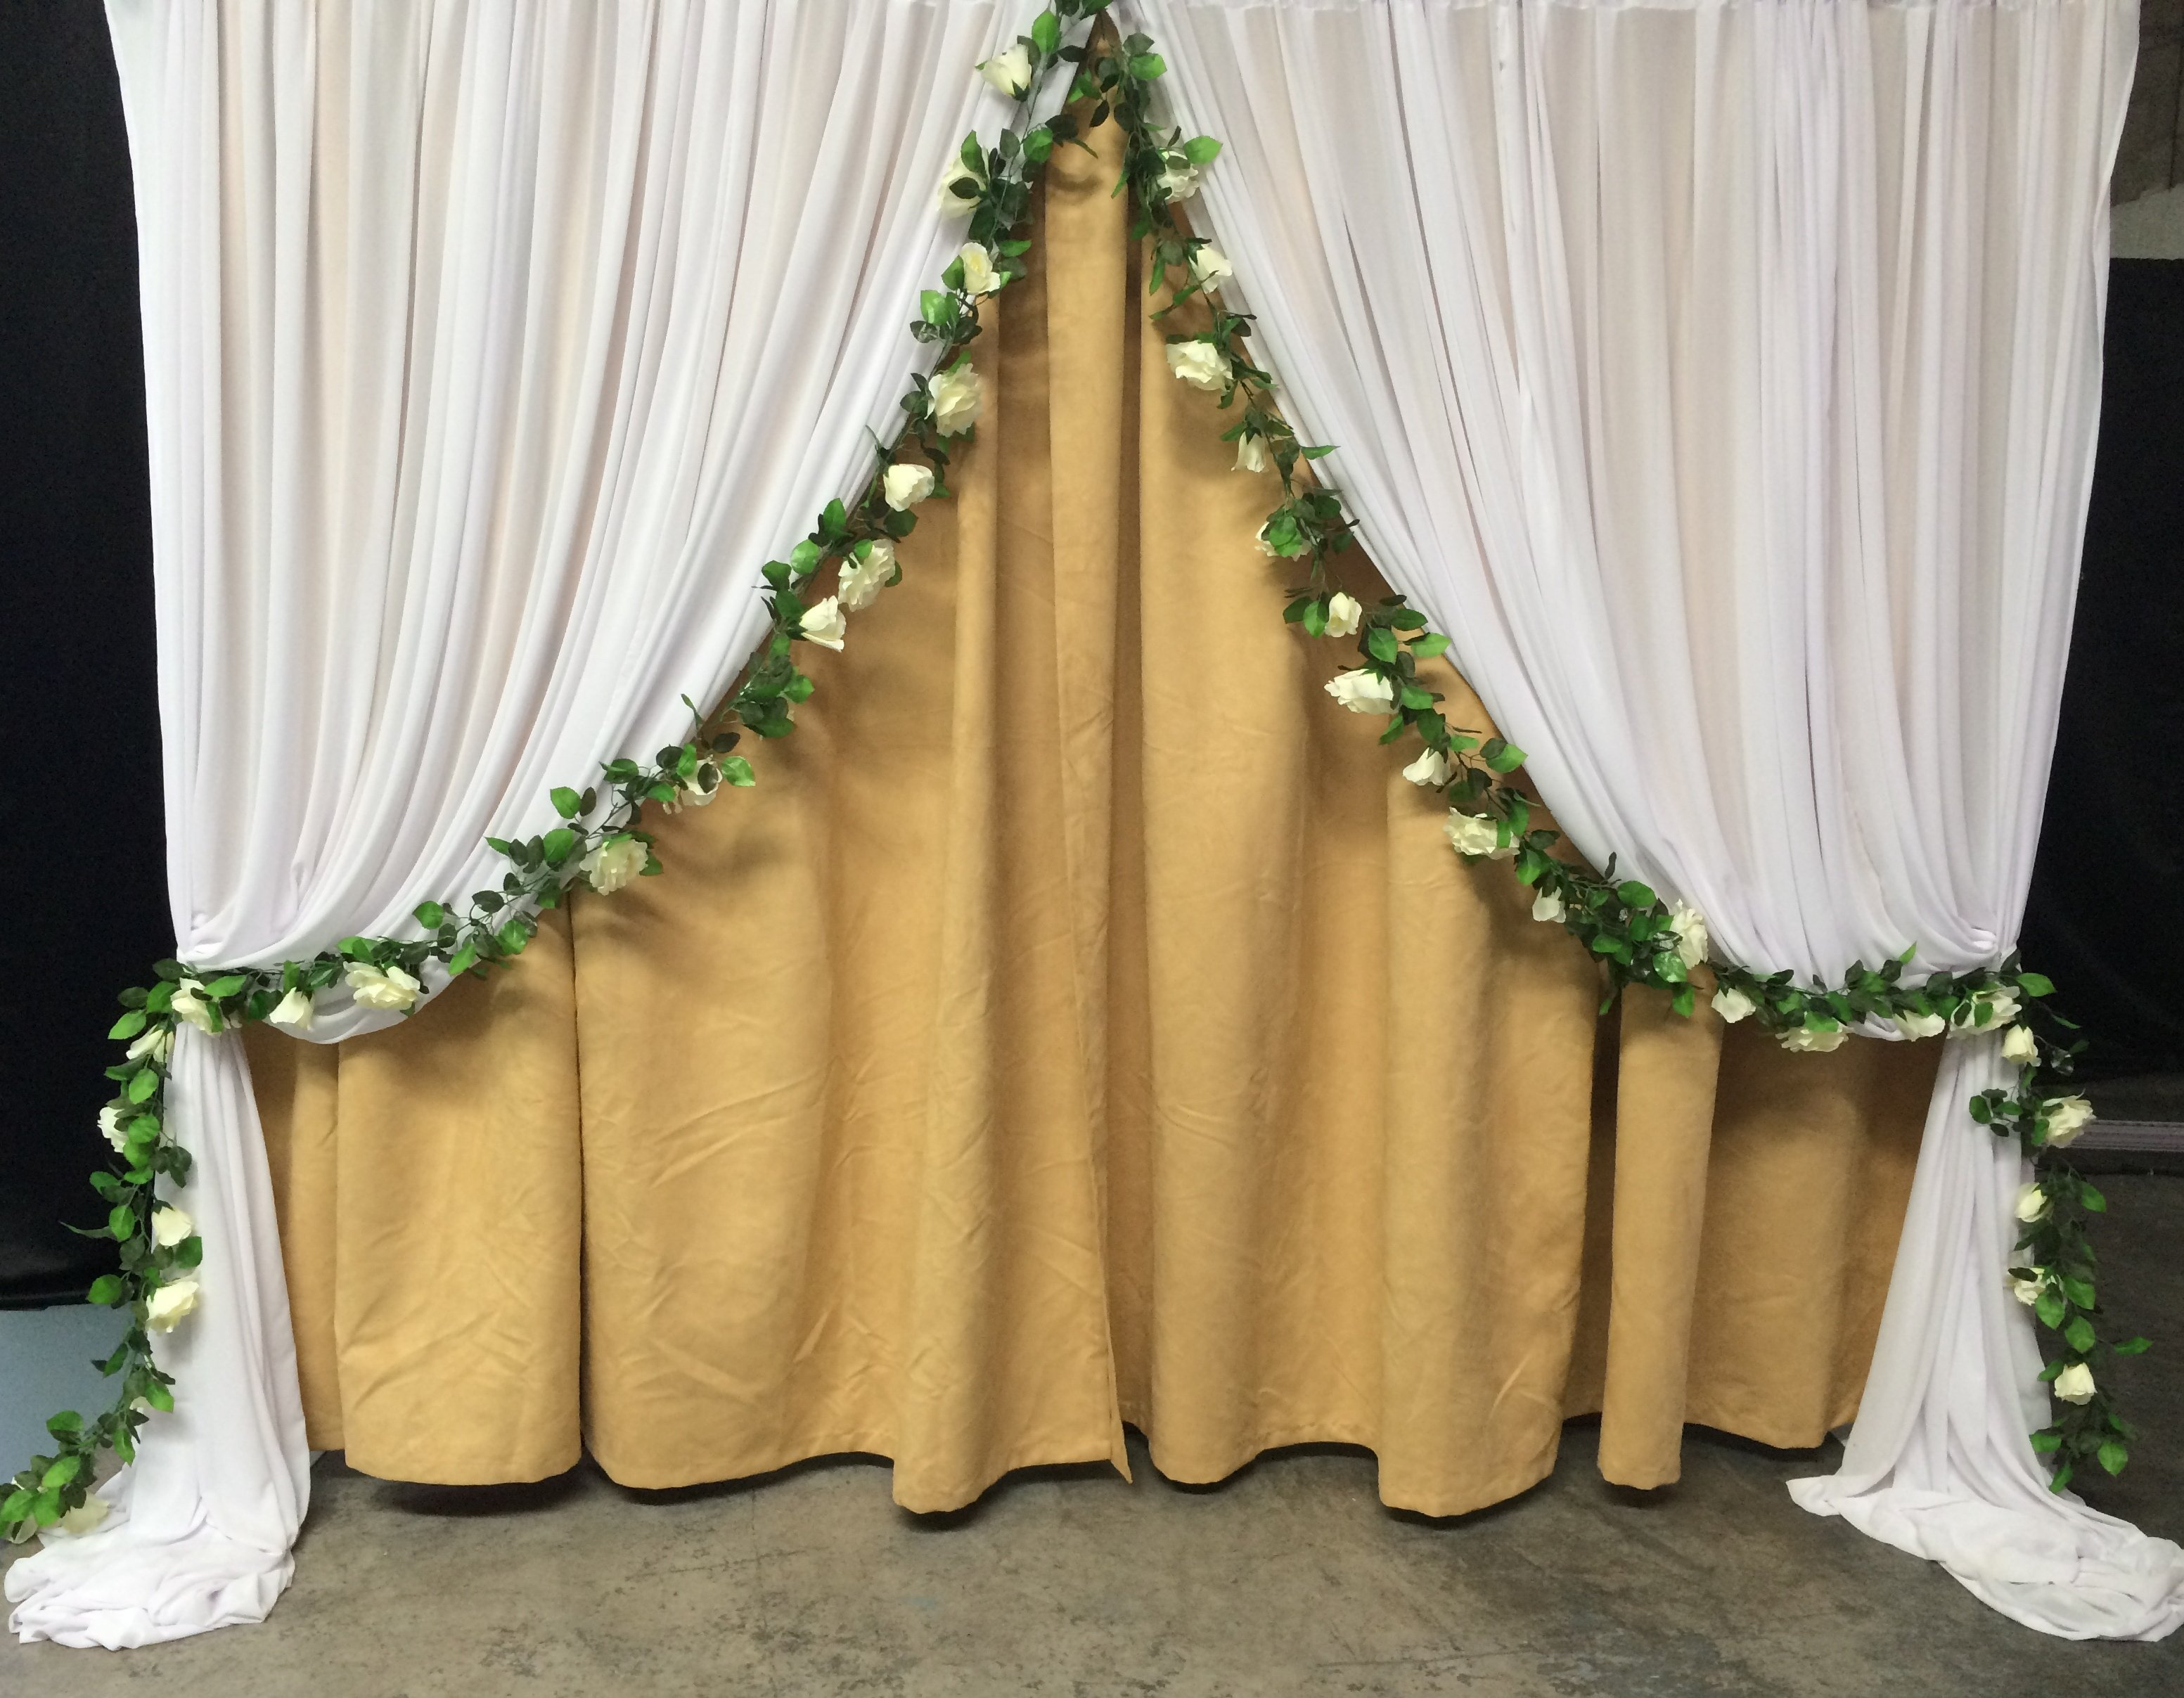 Rustic themed with rose garland $150 incl frames & gst